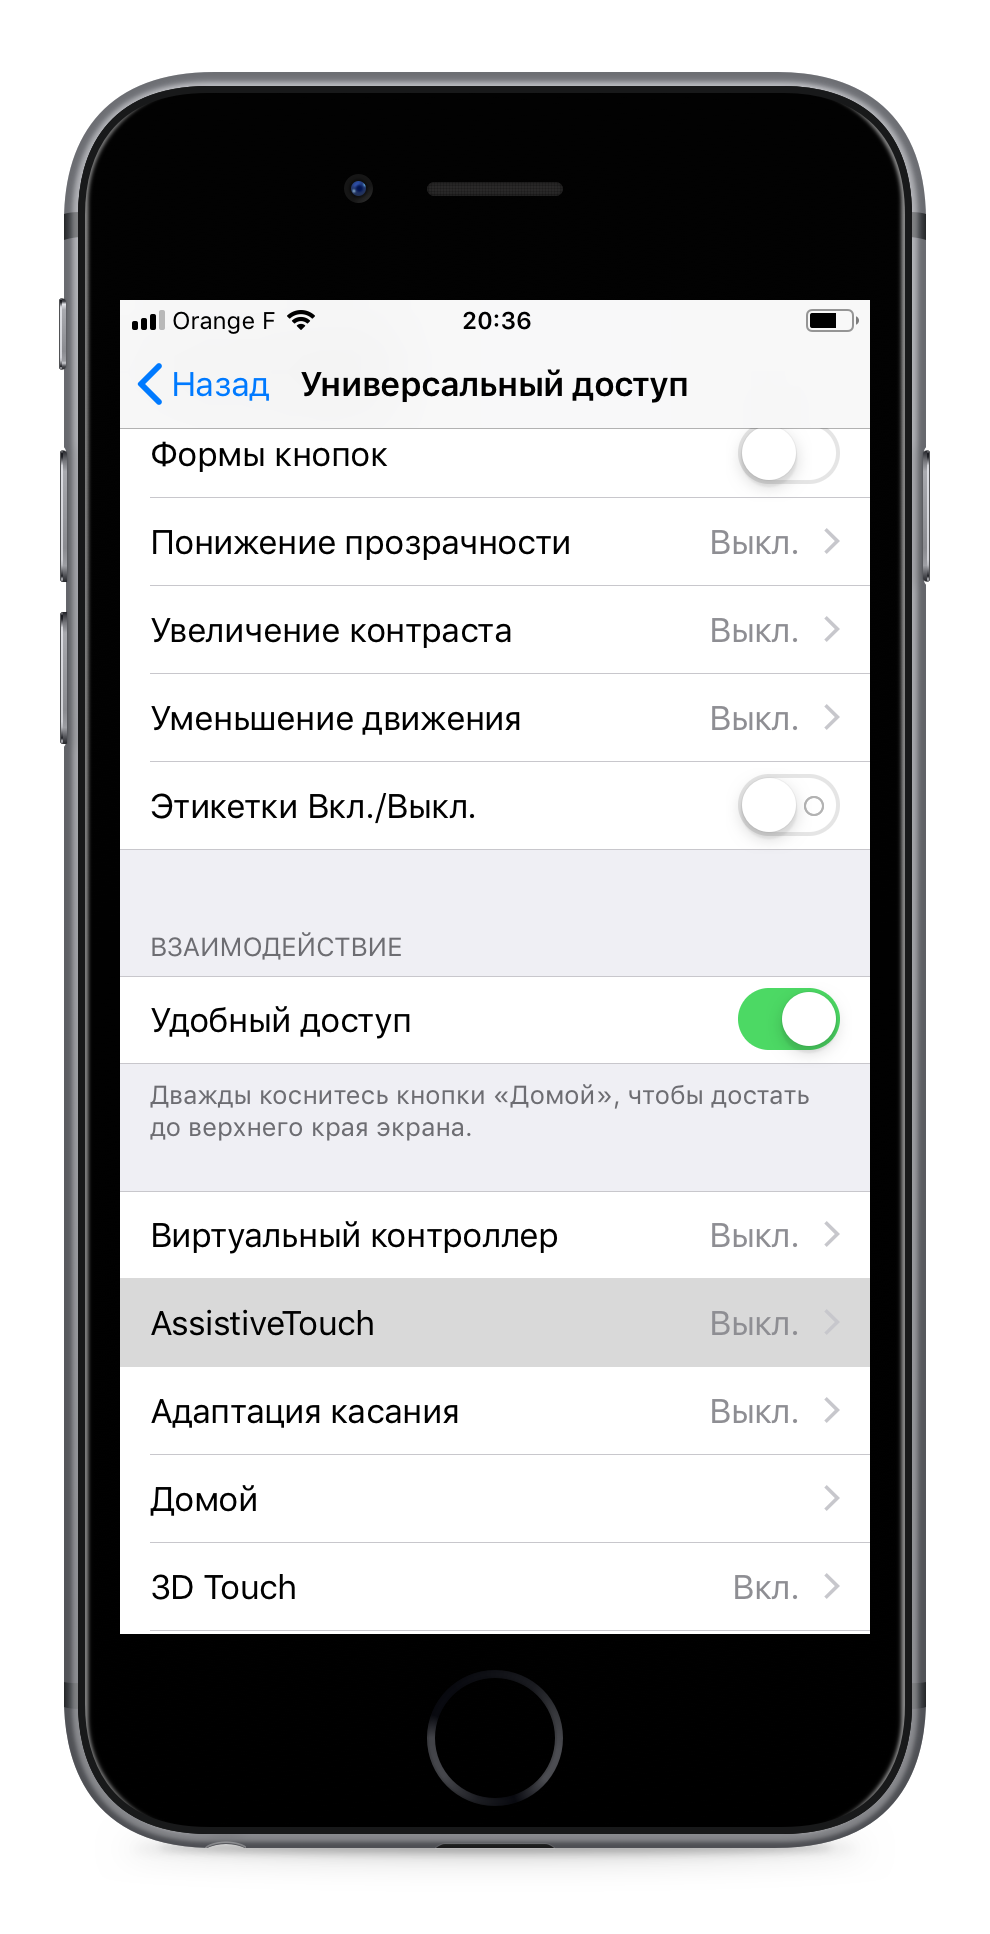 iPhone 6S iOS 12 вход в Assistive touch